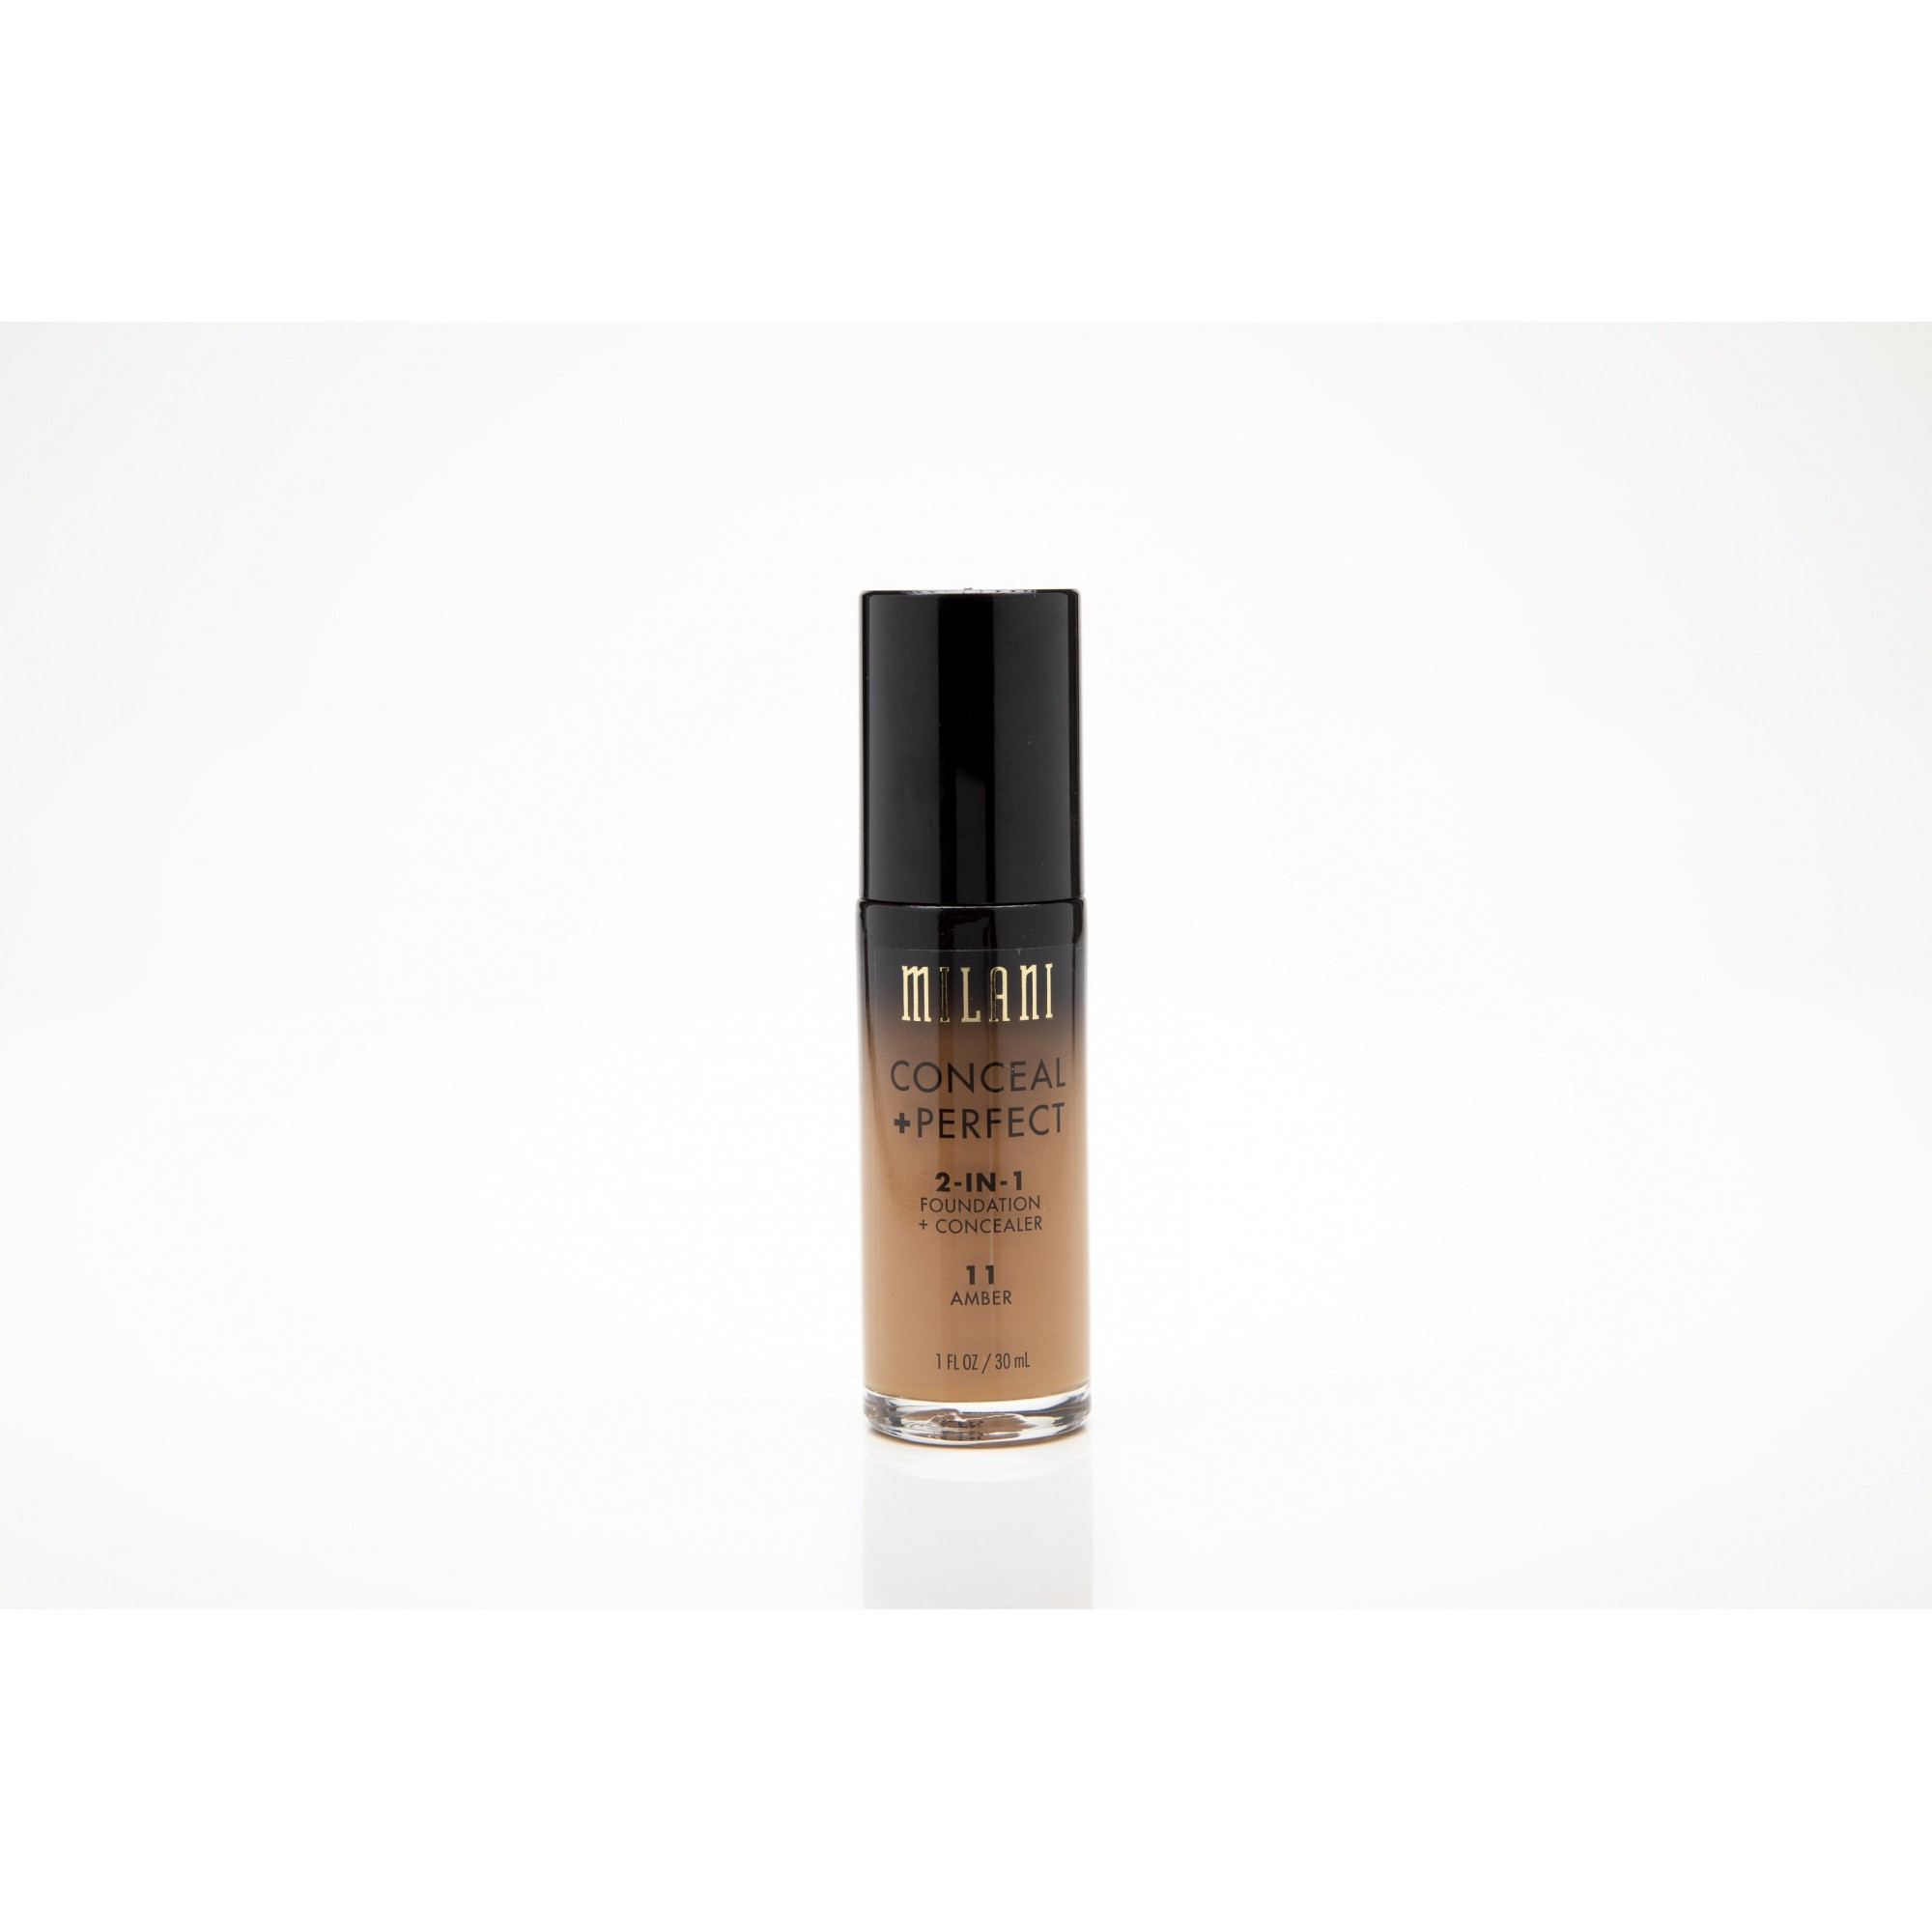 Base milani conceal + perfect 2-in-1 11 amber